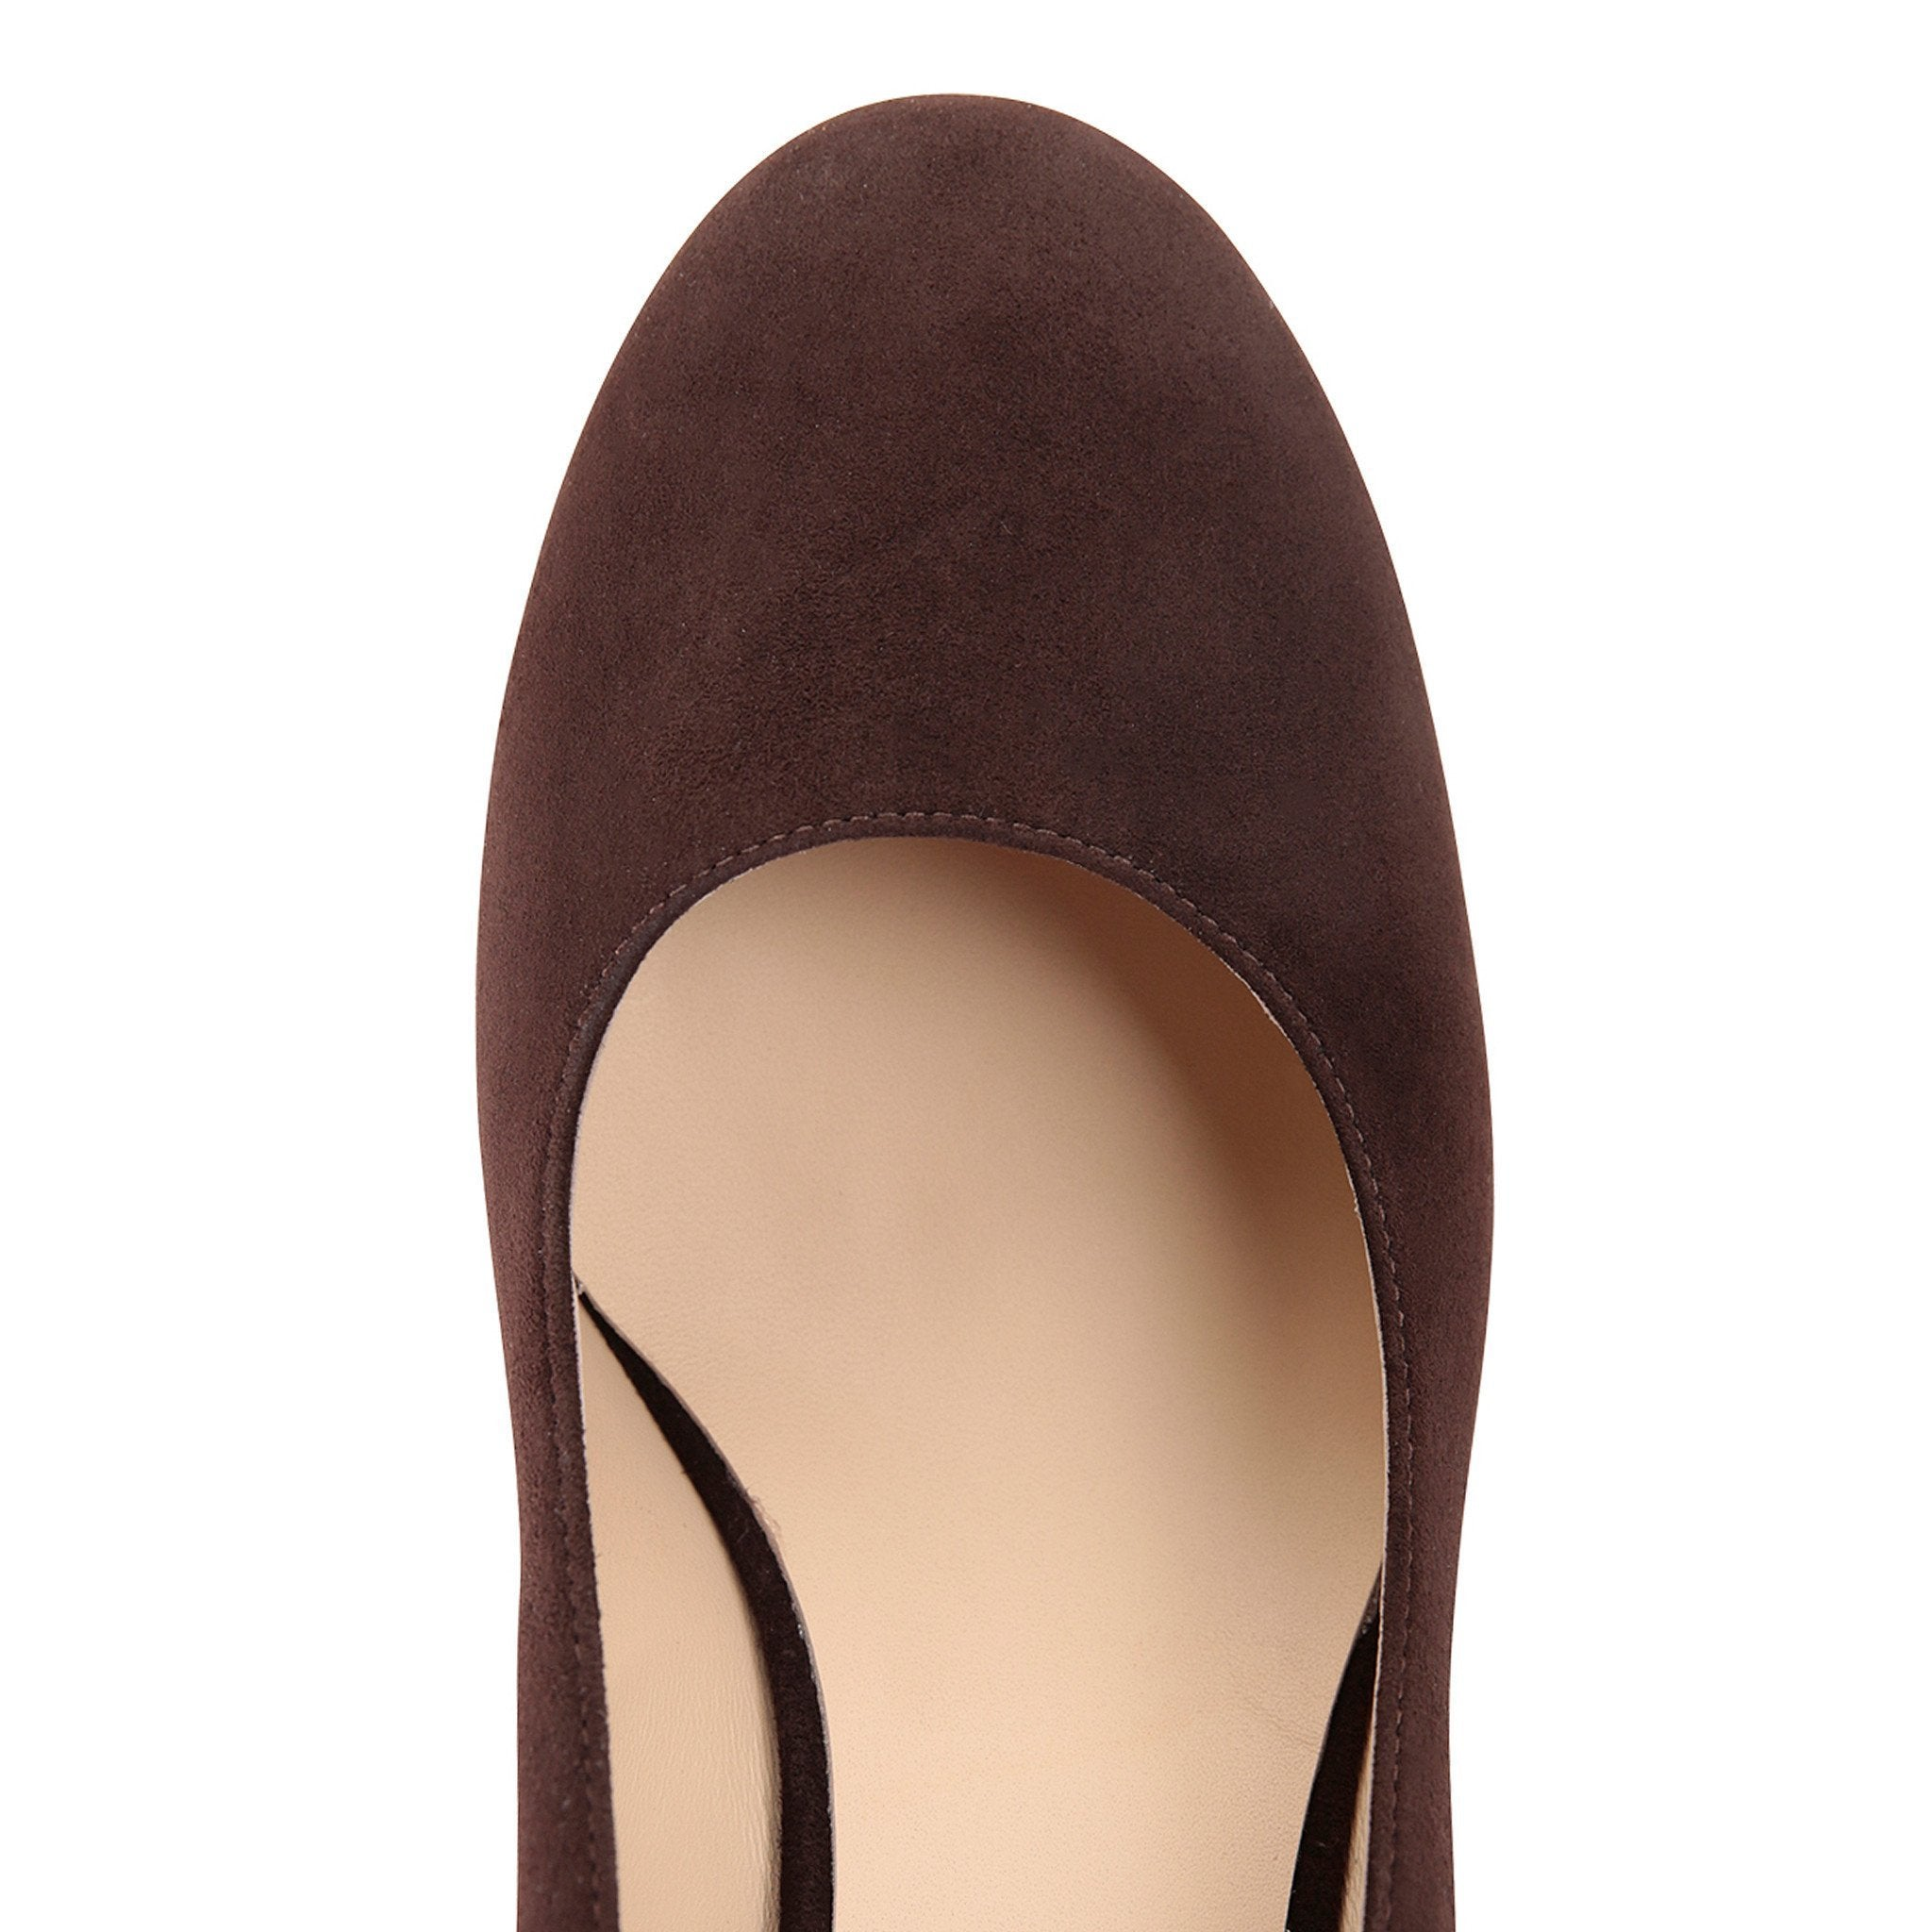 BERGAMO (faux suede), VIAJIYU - Women's Hand Made Sustainable Luxury Shoes. Made in Italy. Made to Order.